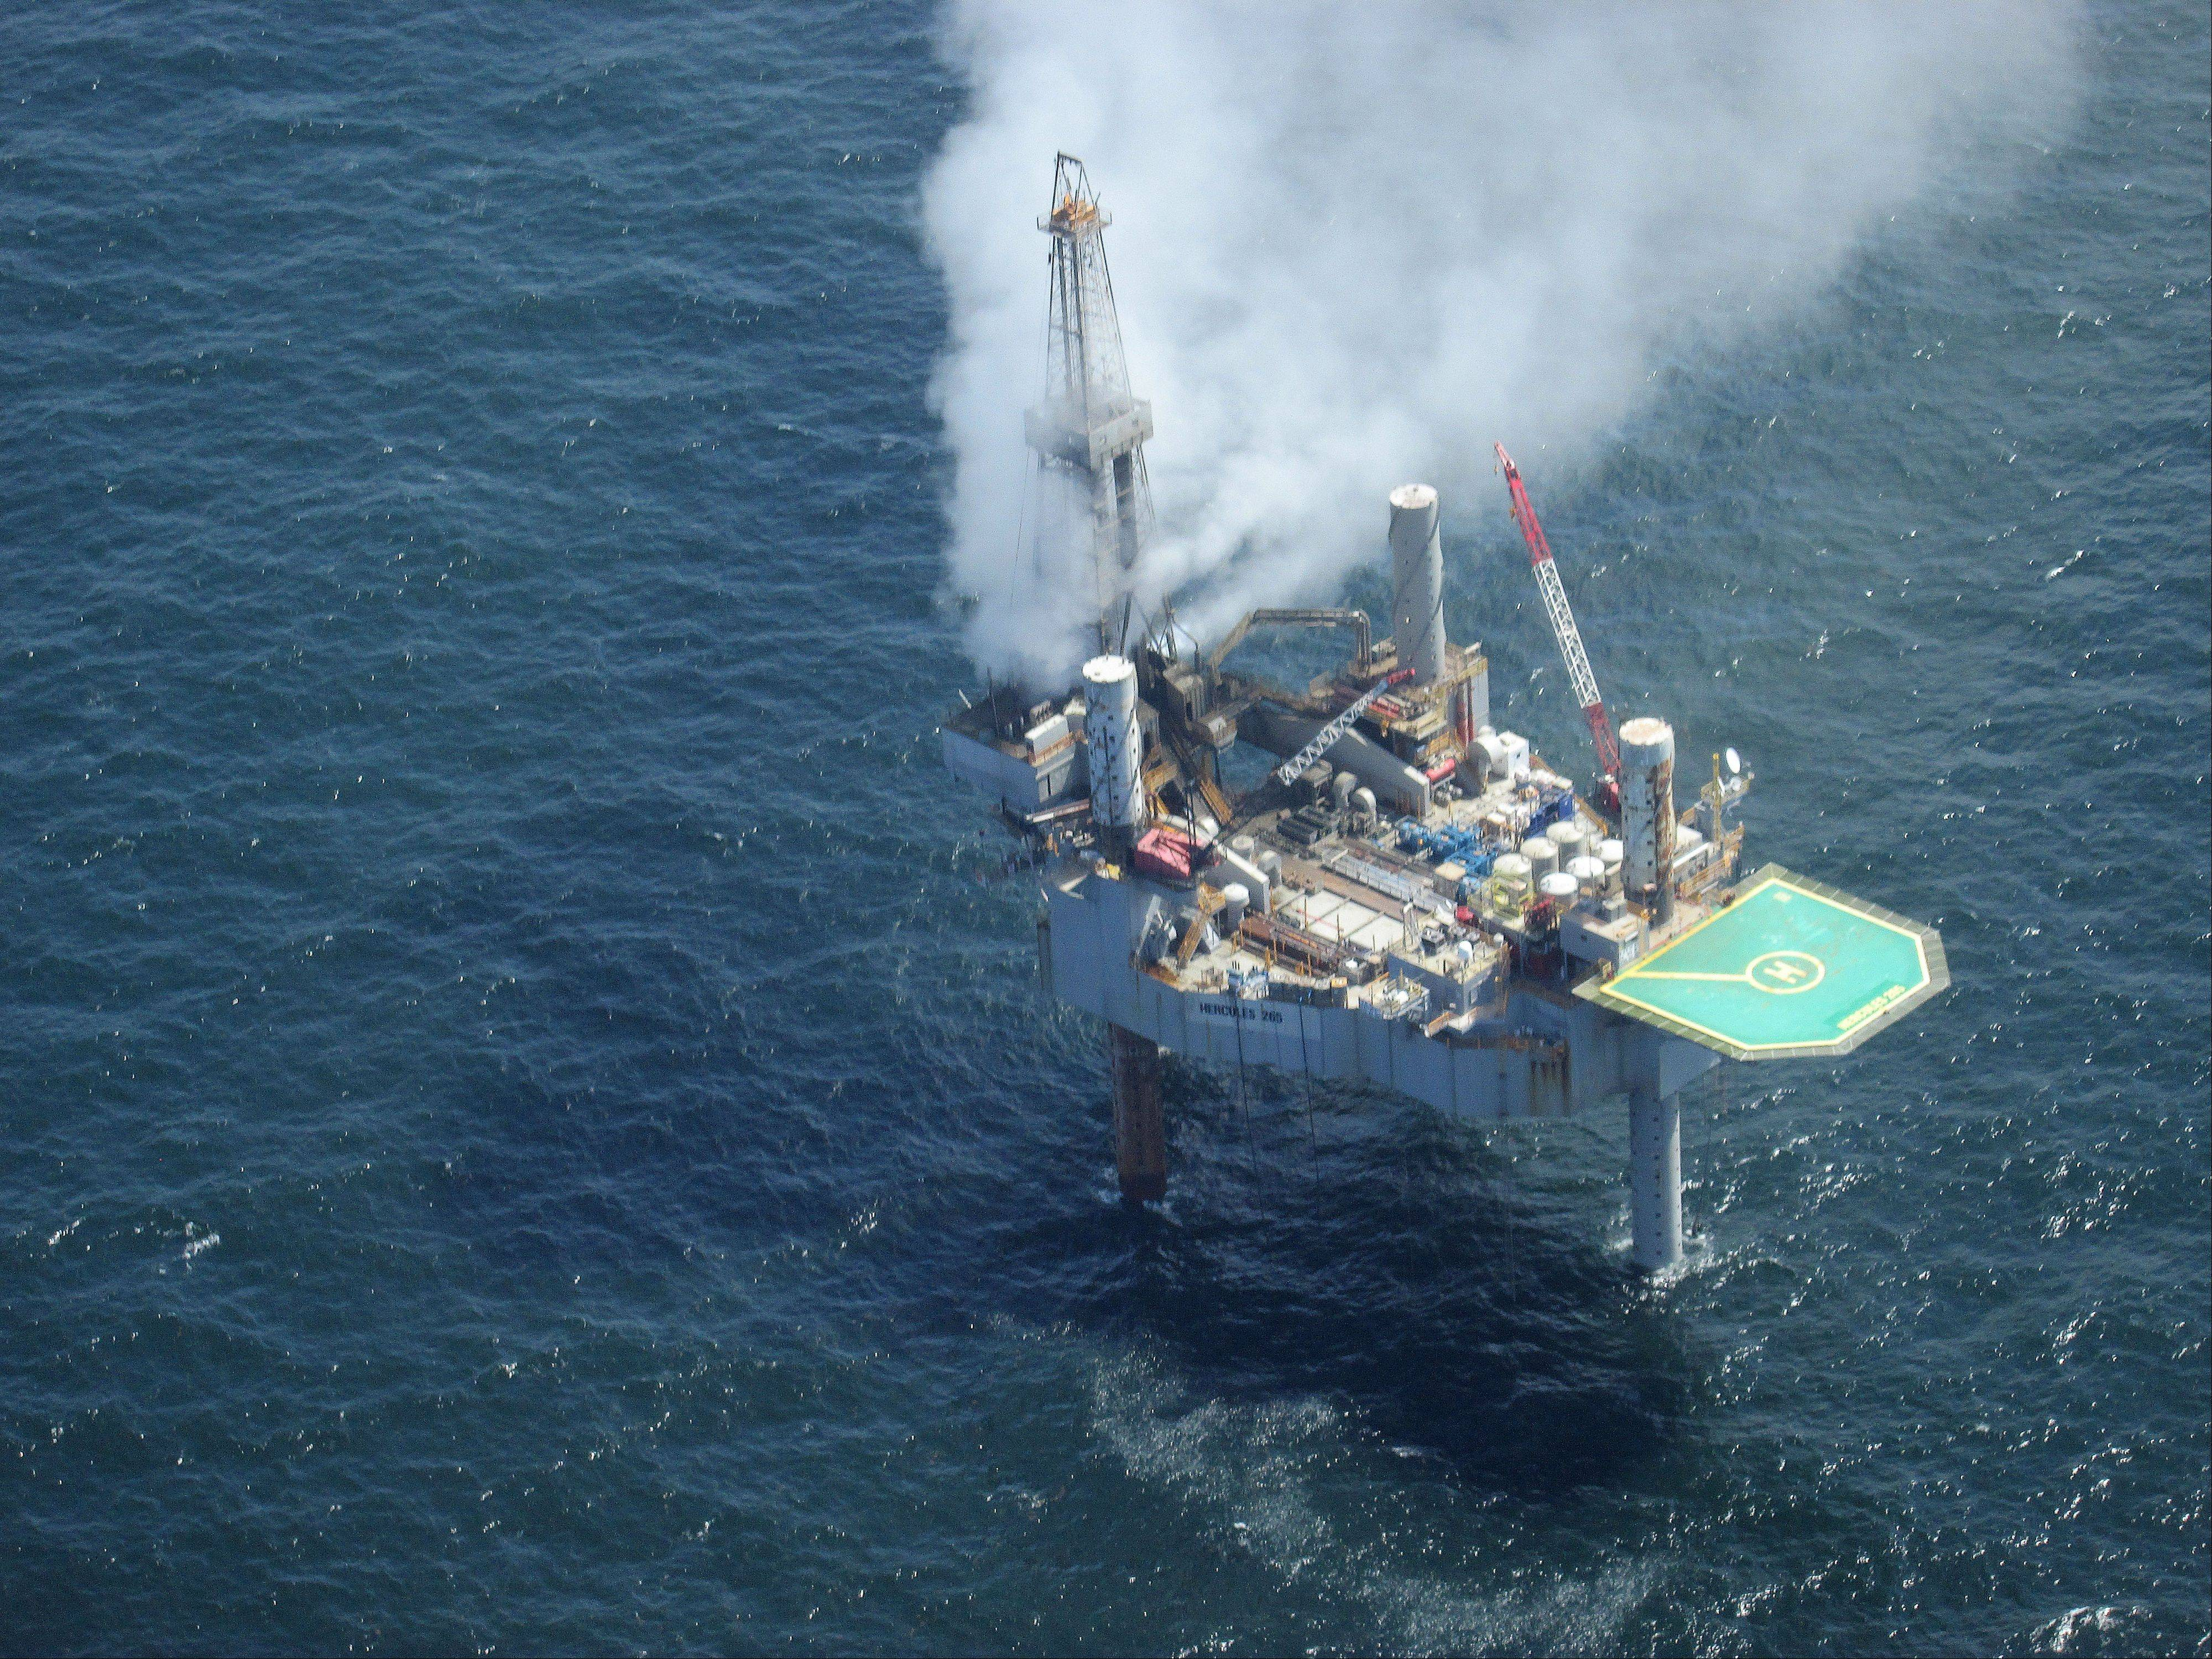 Natural gas spewing from the Hercules 265 drilling rig in the Gulf of Mexico off the coast of Louisiana, Tuesday, July 23, 2013. No injuries were reported in the midmorning blowout, about 55 miles off the Louisiana coast in the Gulf of Mexico.